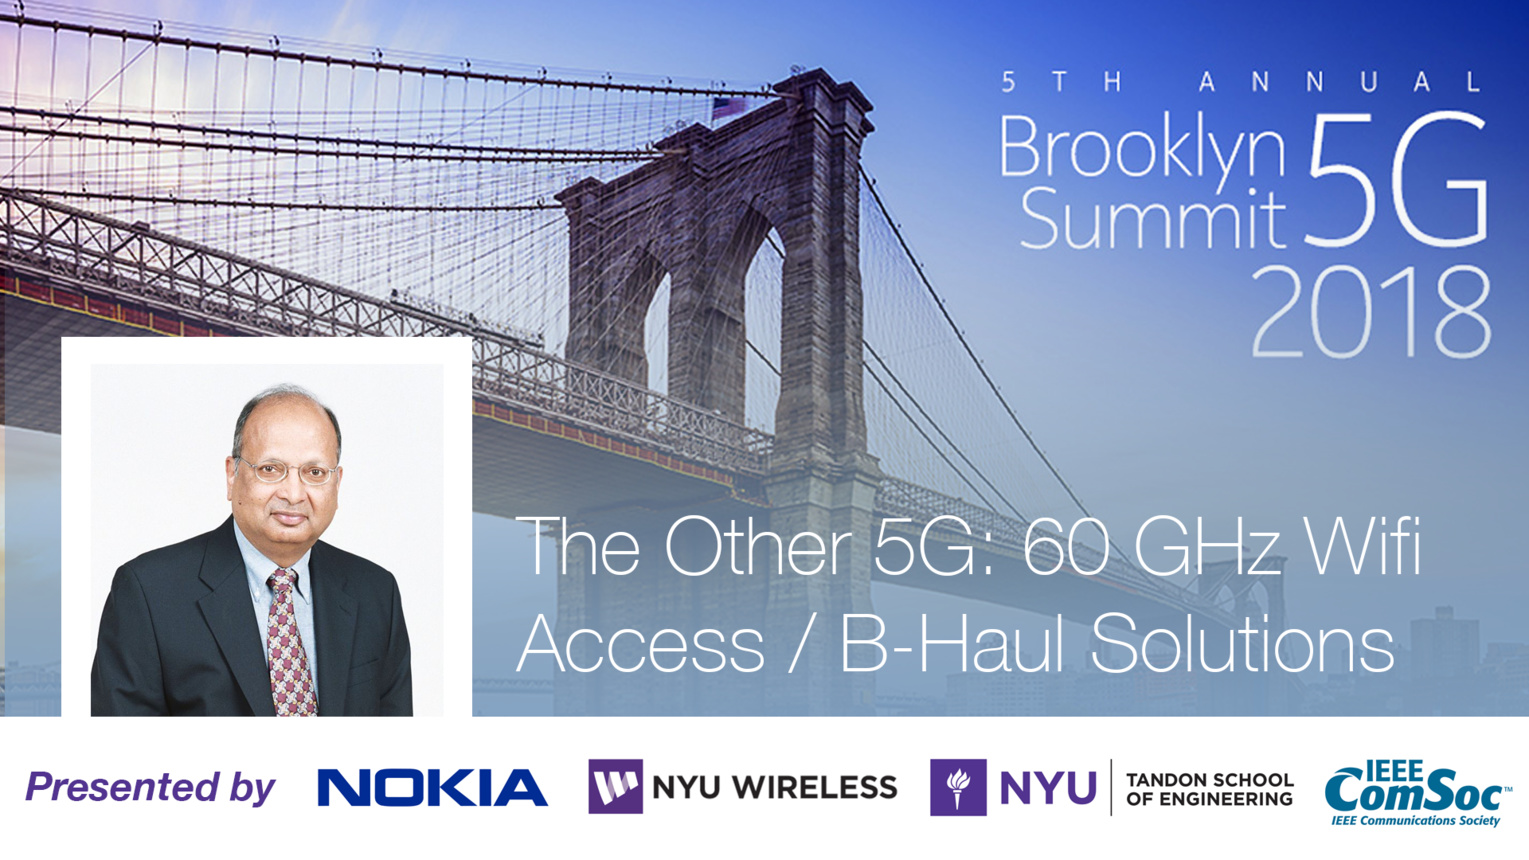 The Other 5G: 60 GHz Wifi Access / B-Haul Solutions - Arogyaswami Paulraj - Brooklyn 5G Summit 2018